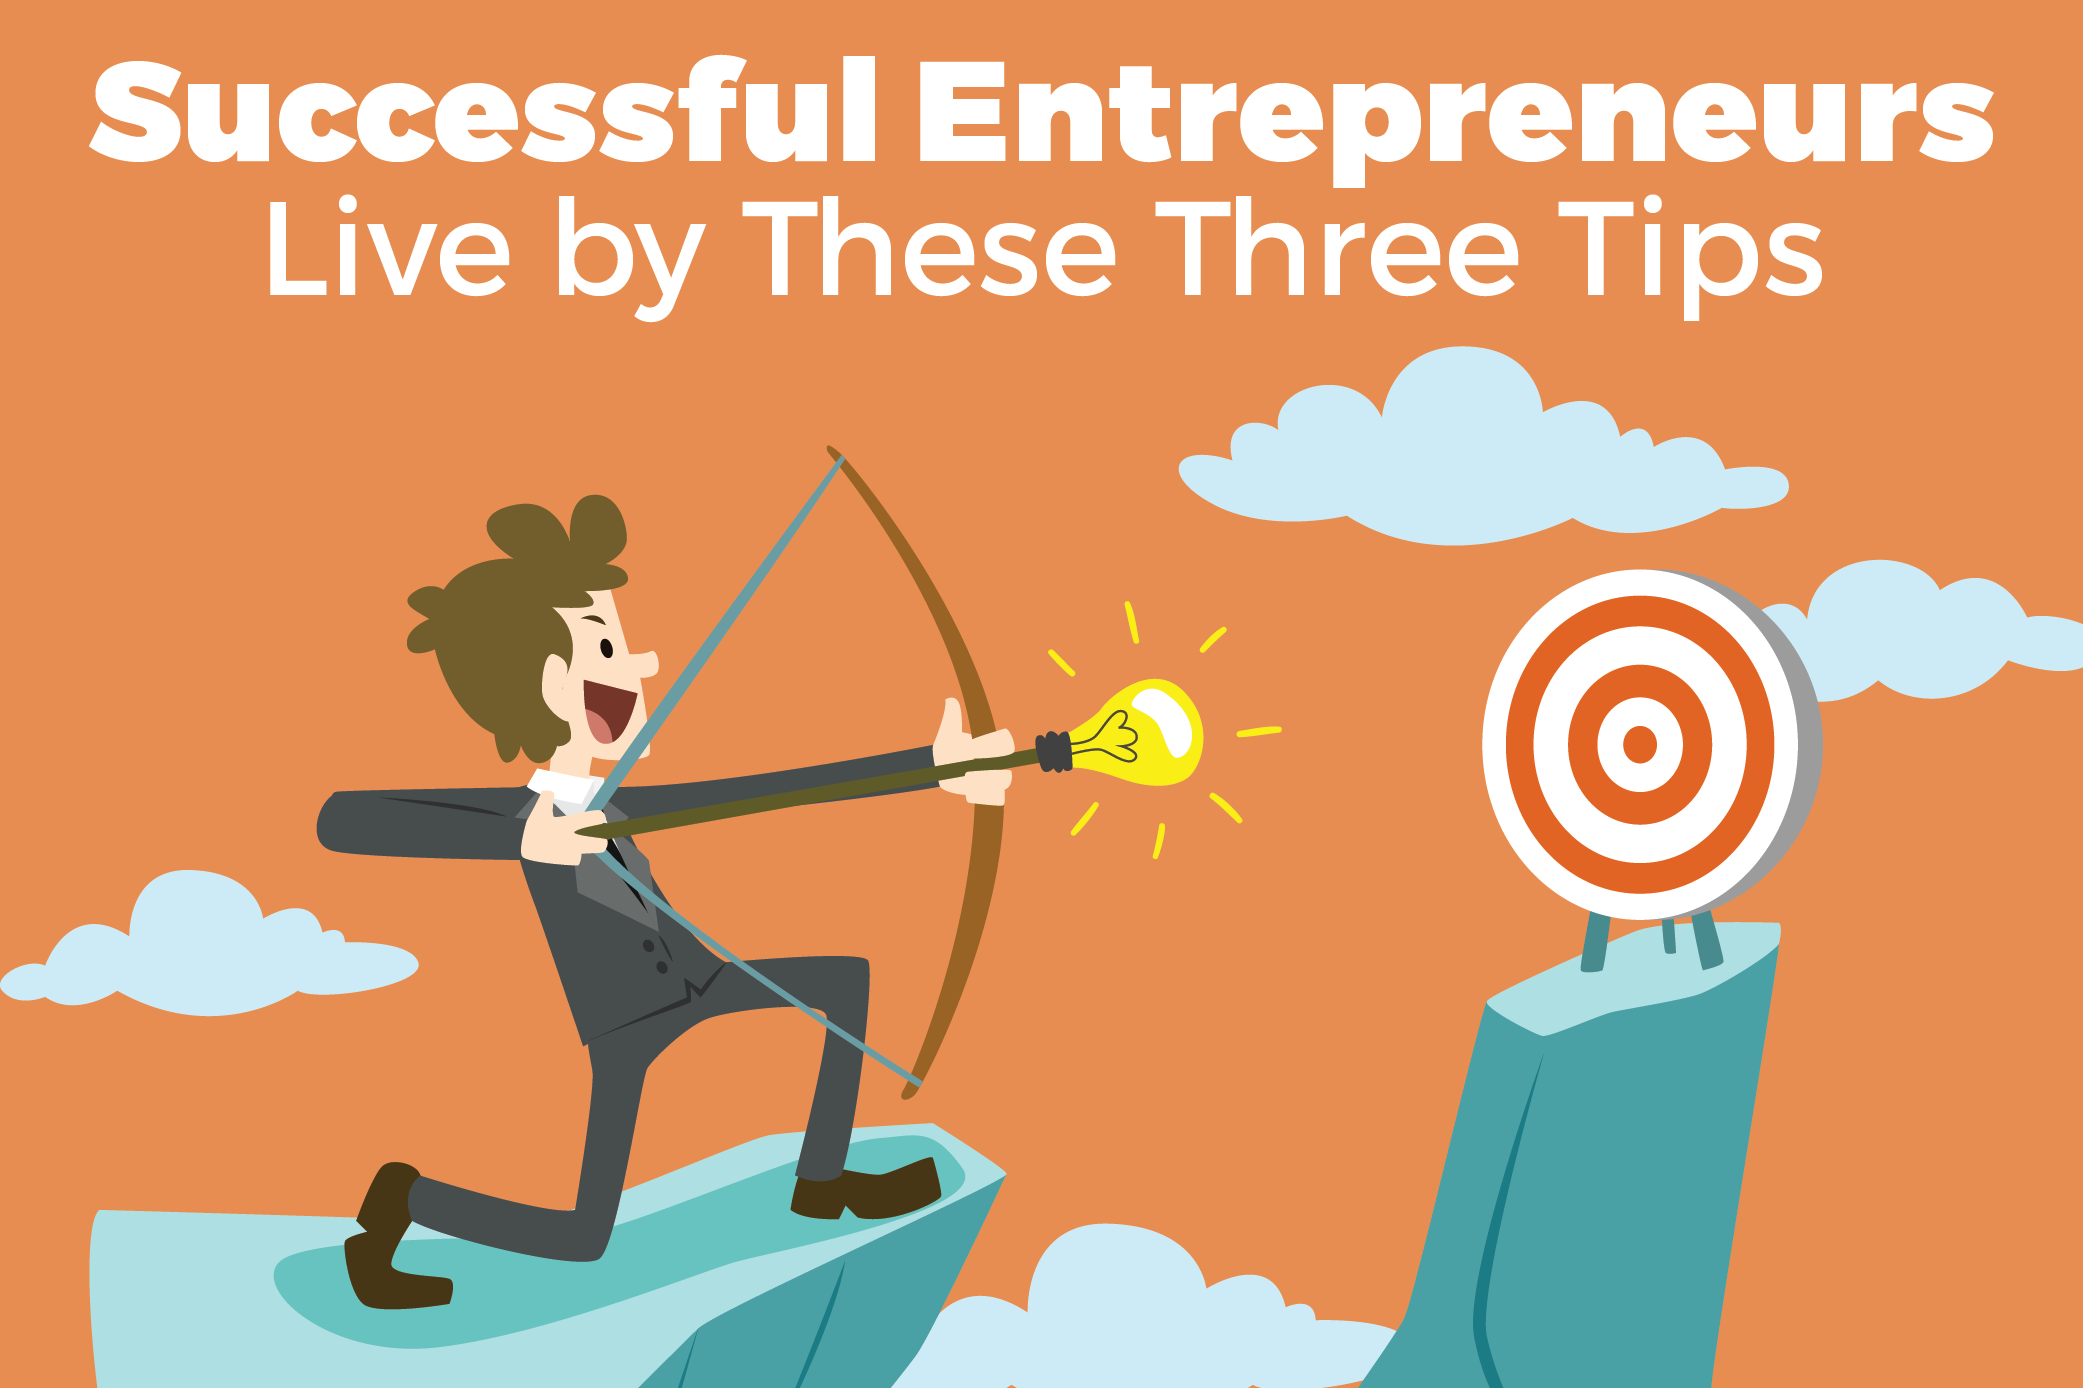 Successful entrepreneurs live by these 3 tips